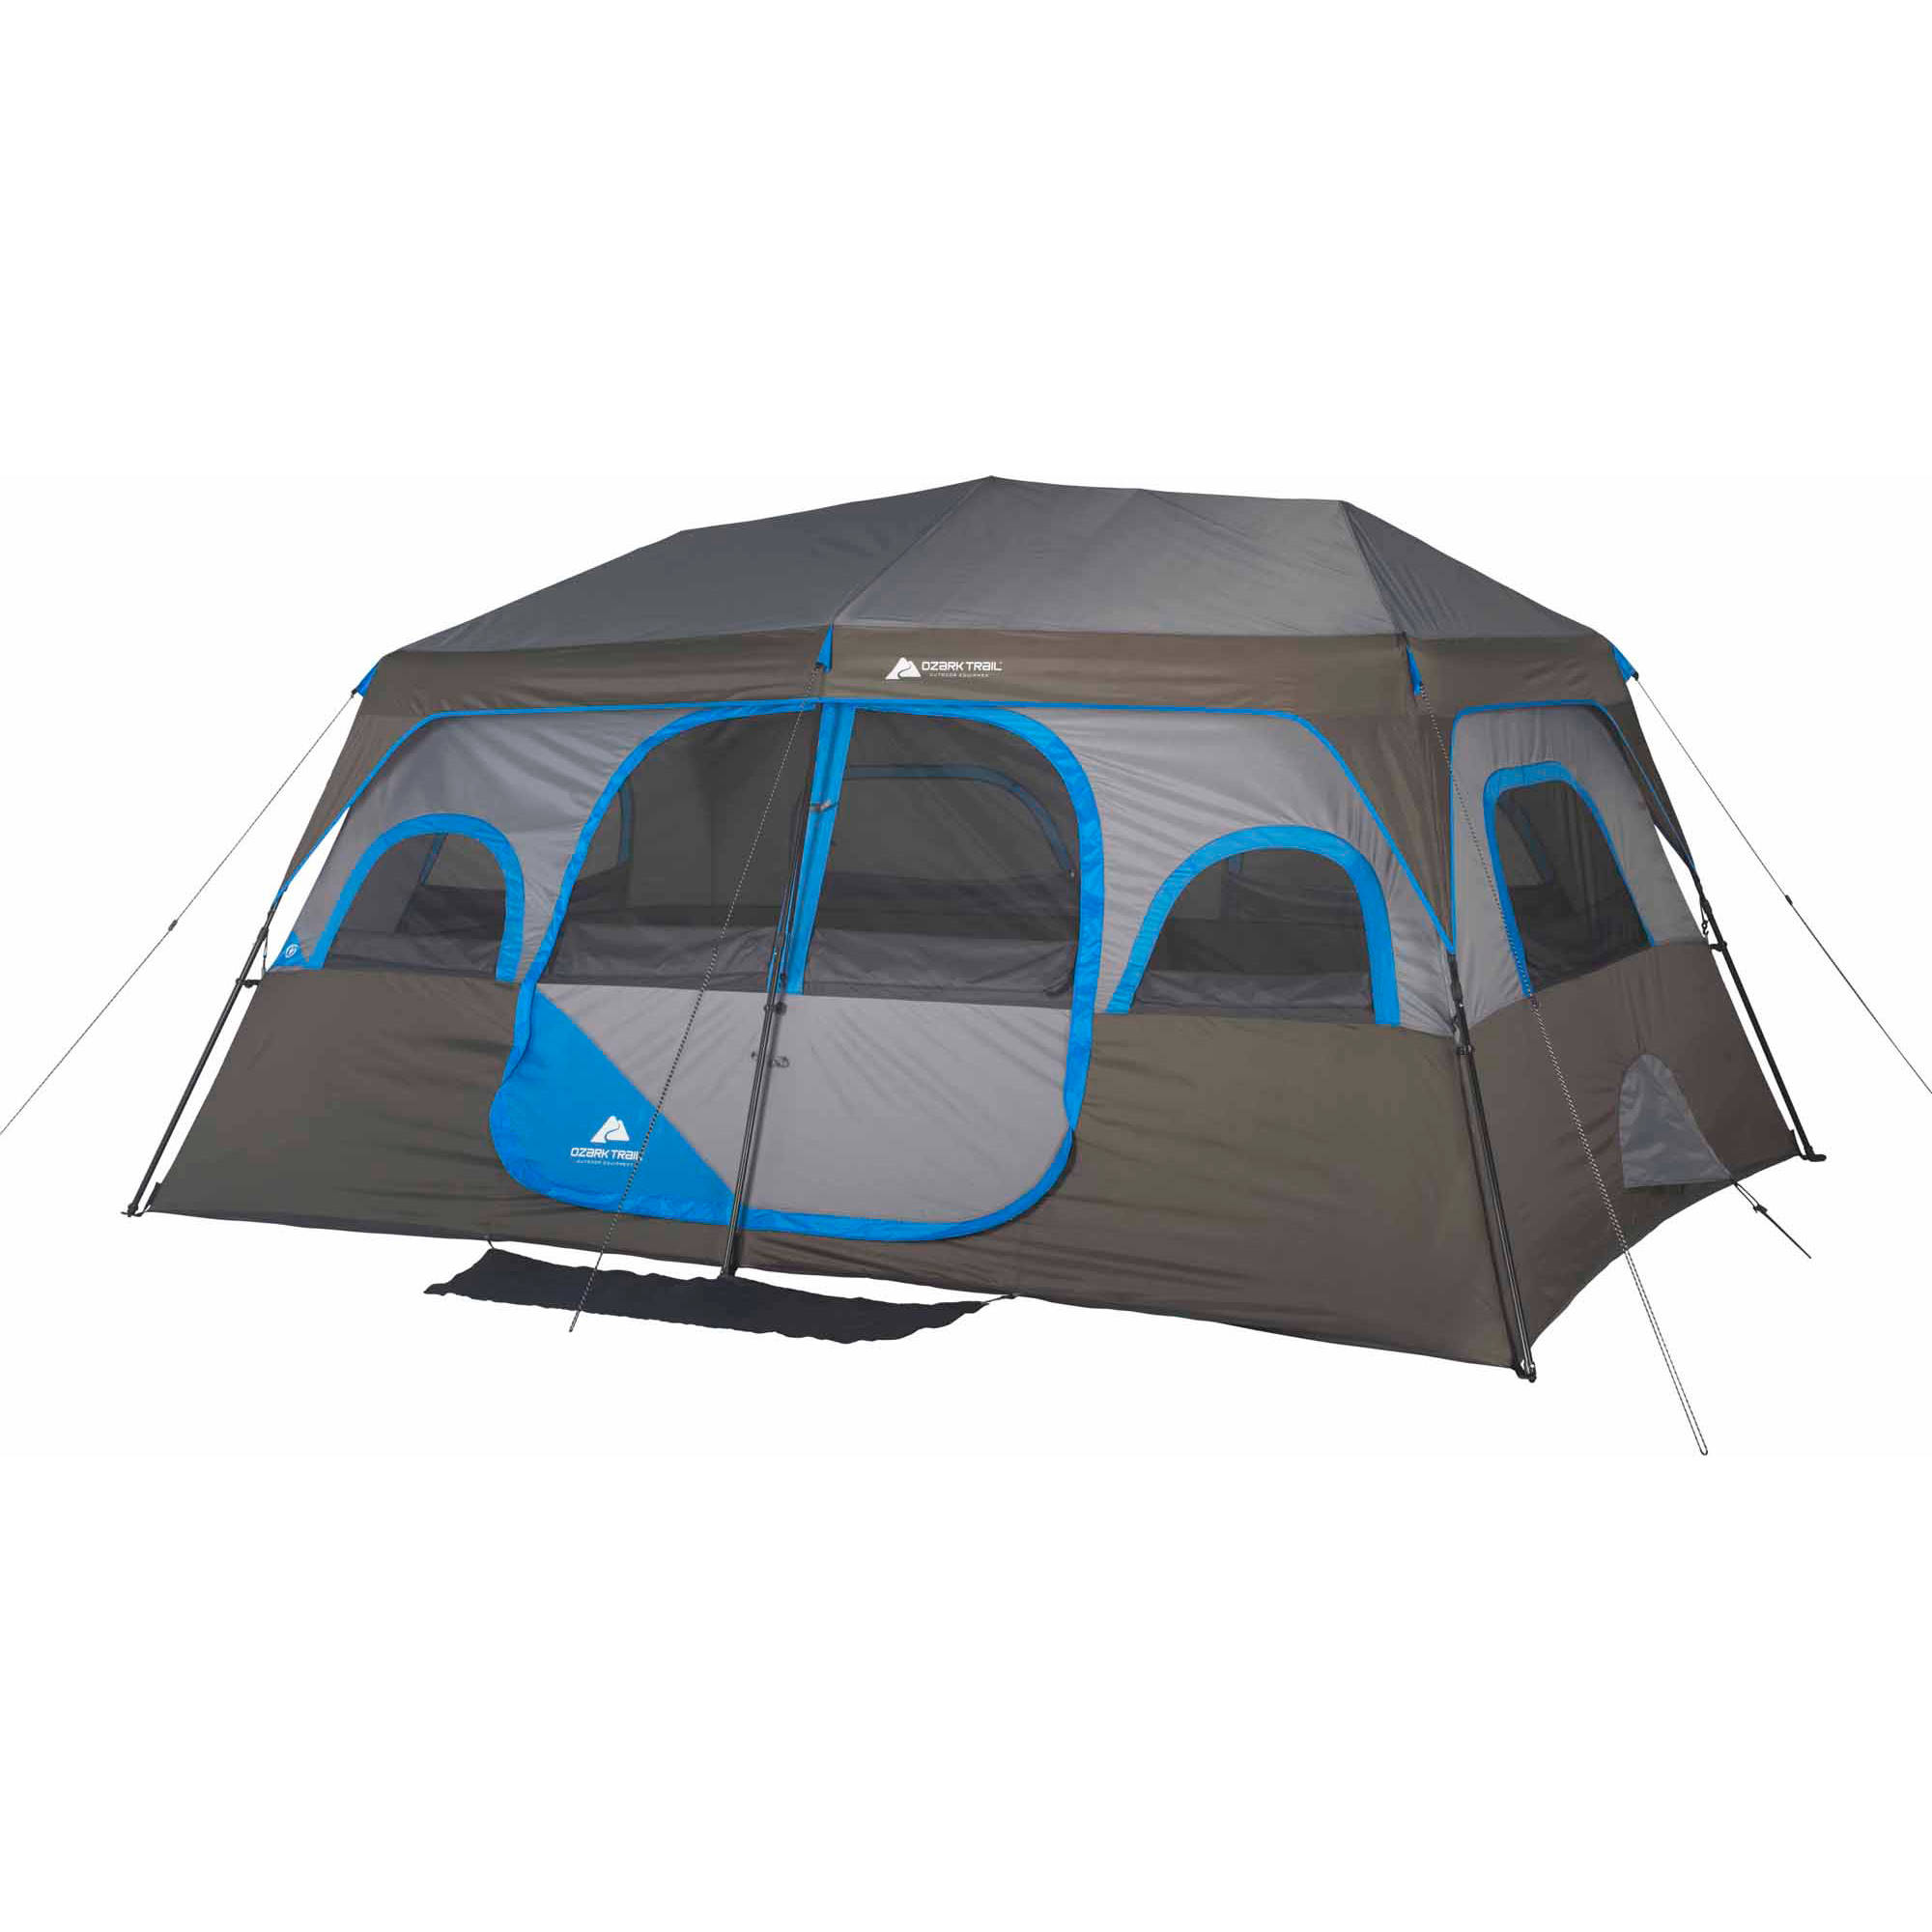 Exceptionnel Ozark Trail 10 Person 2 Room Instant Cabin Tent   Walmart.com